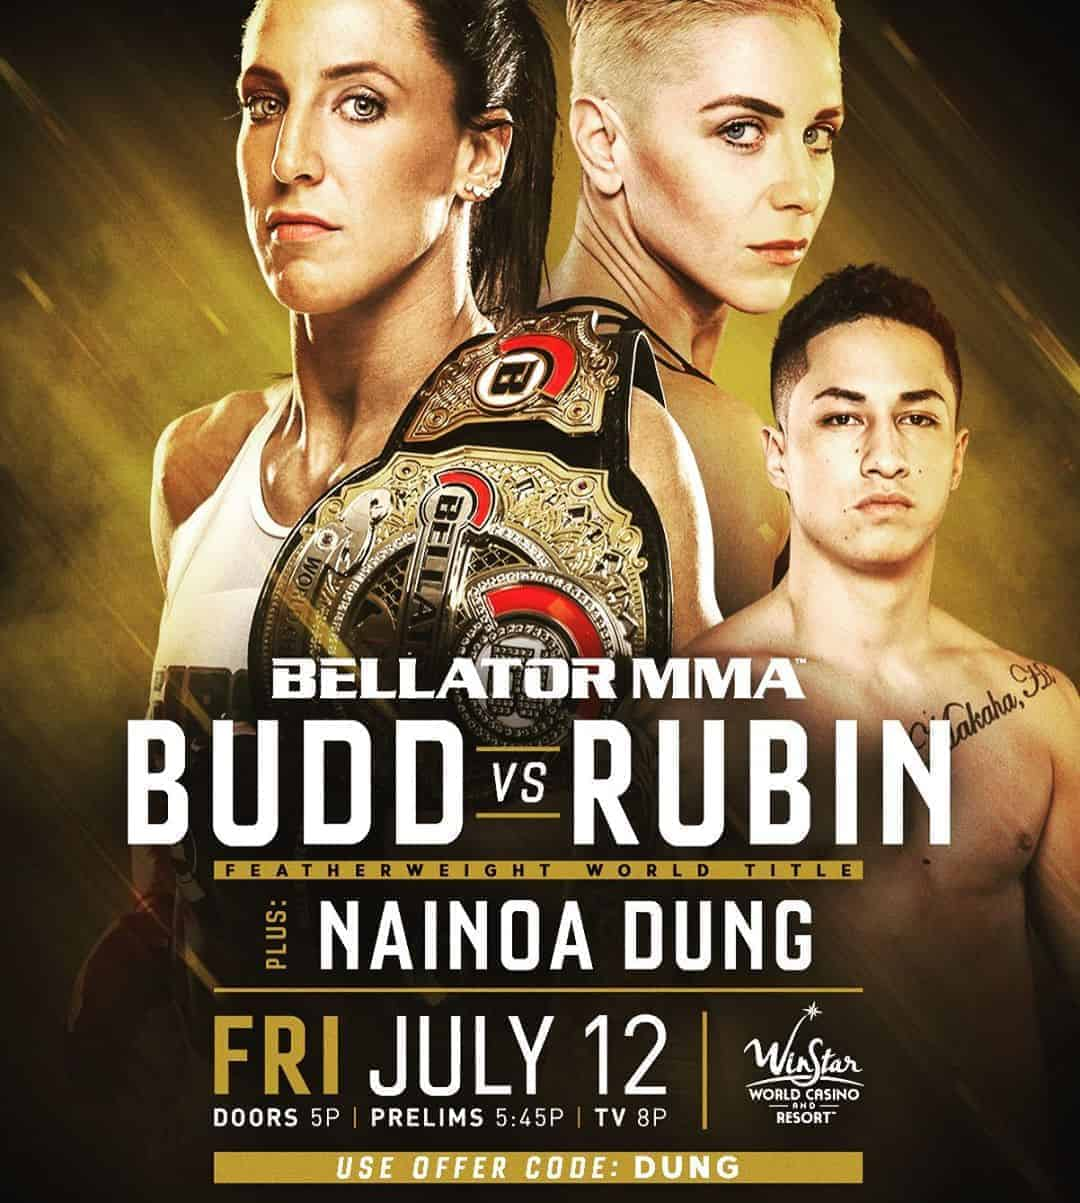 Bellator MMA Nainoa Dung July 12